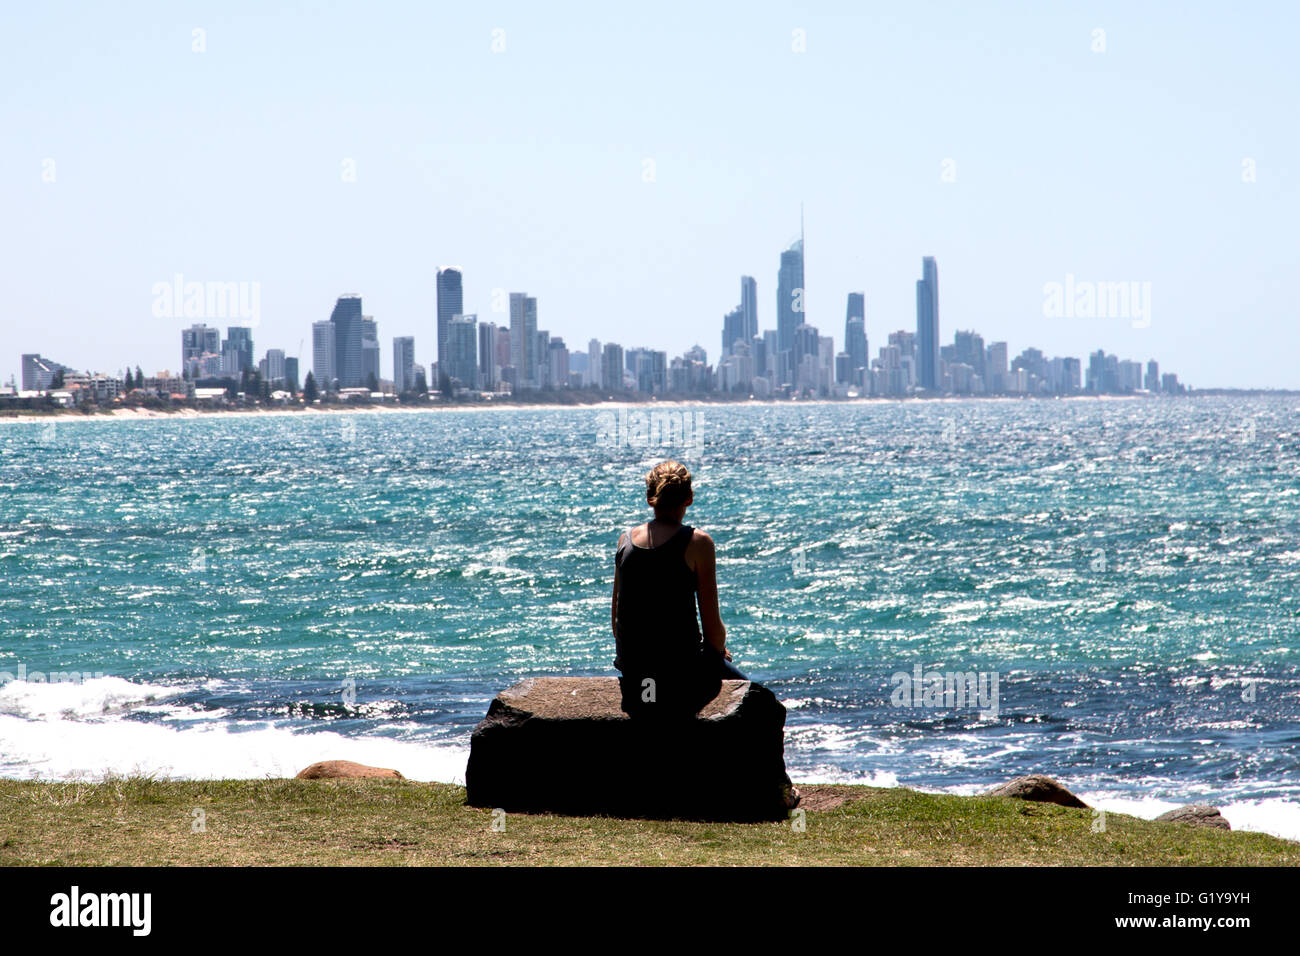 Woman sitting on rock looking across to the high rise buildings of the Gold Coast in Queensland Australia - Stock Image